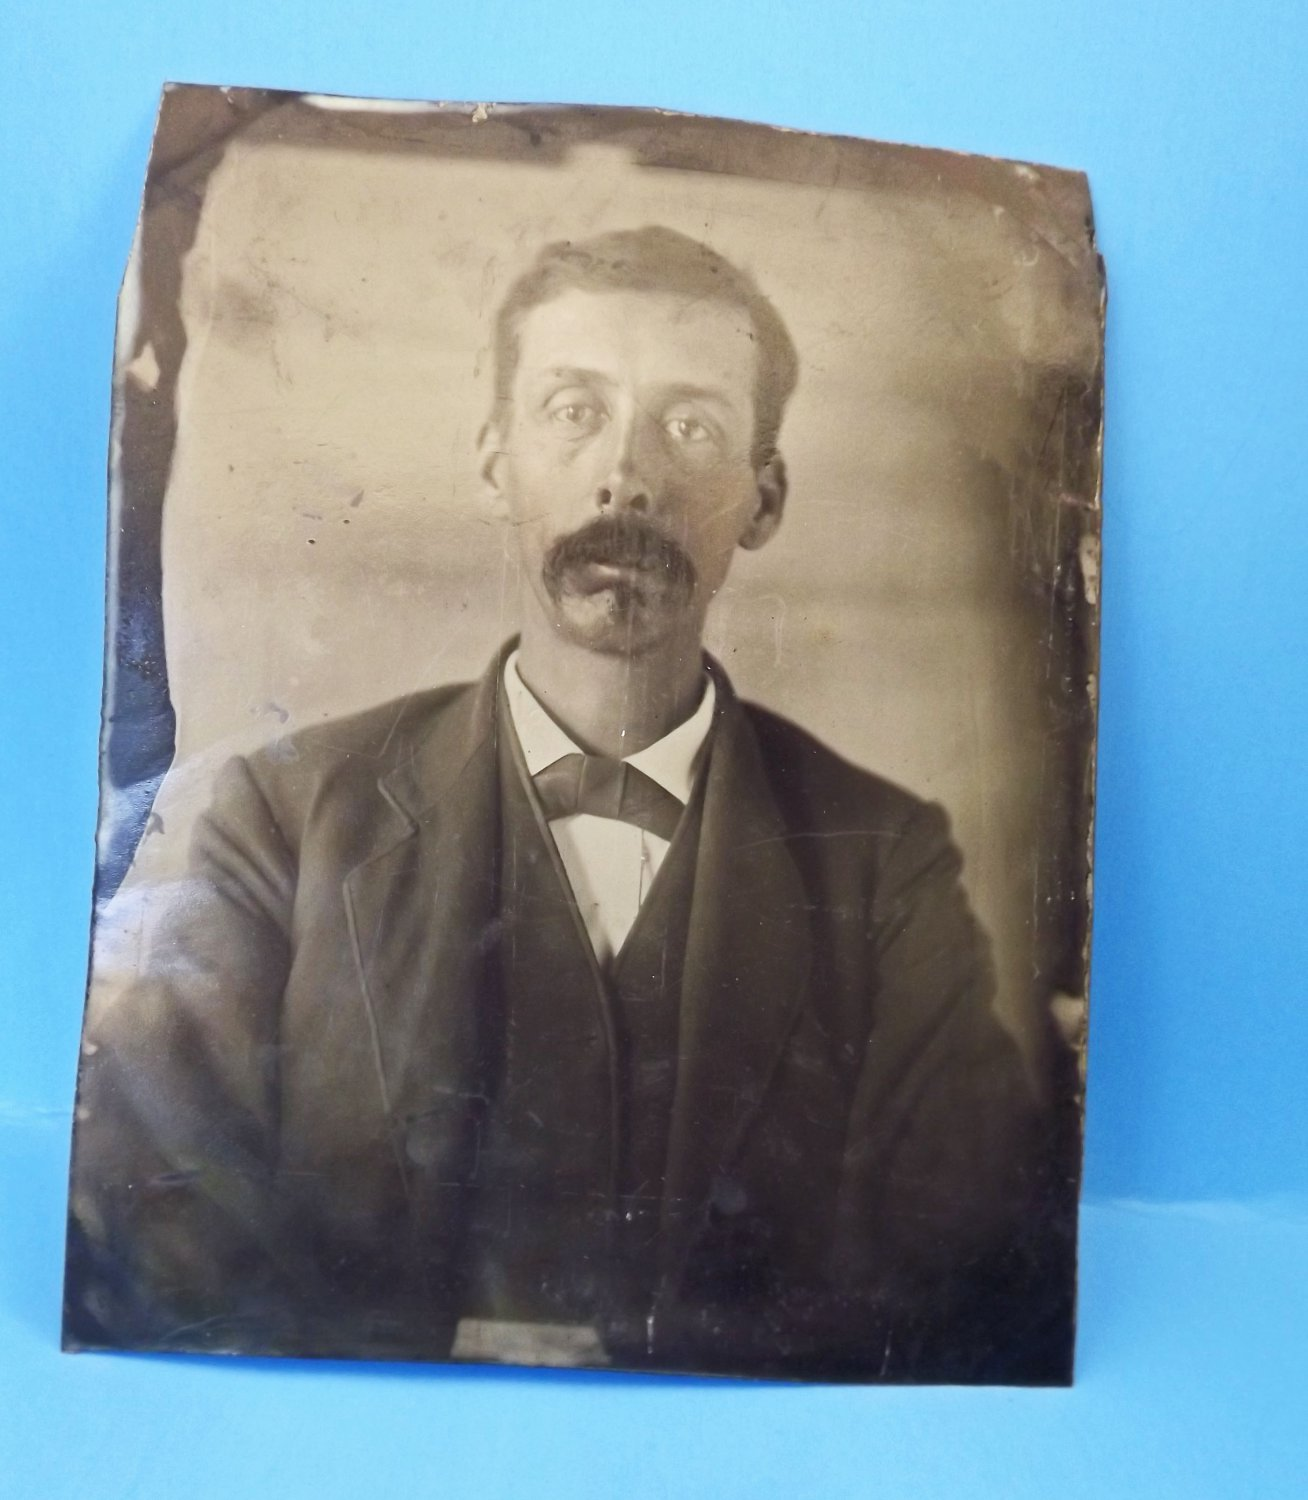 Antique Tin Type Photograph - Photo - Picture - Man Gentleman - 1800s - Large Size